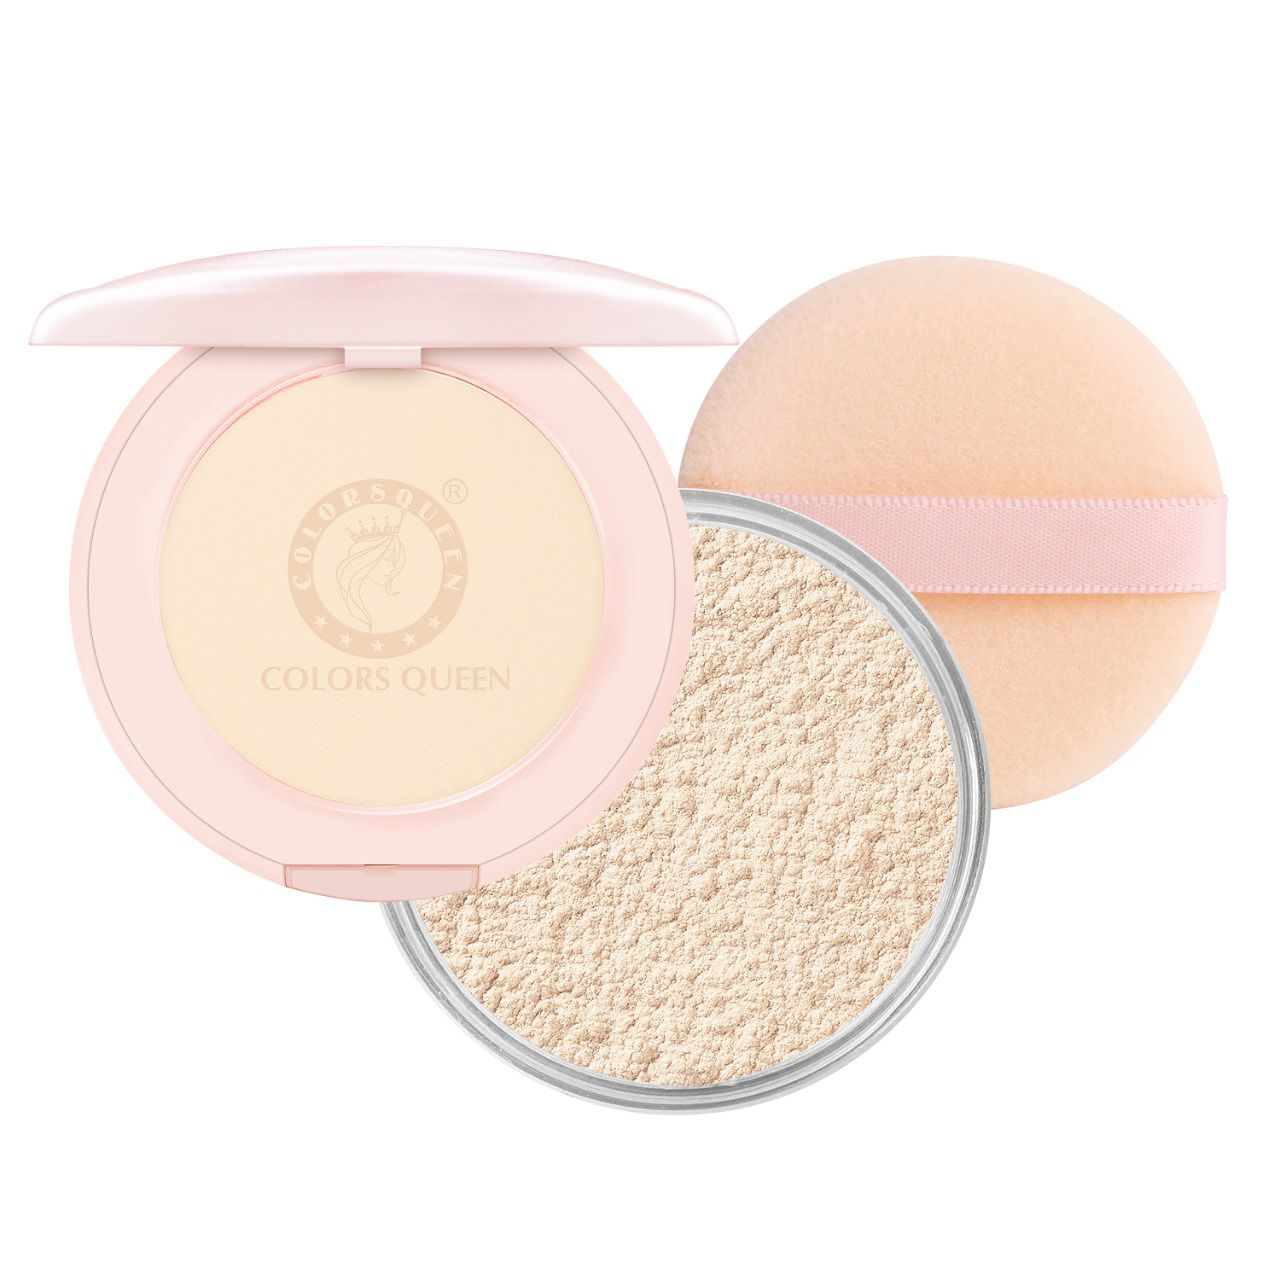 Colors Queen Fair Shade  Loose Powder with SPF 15   30 gm